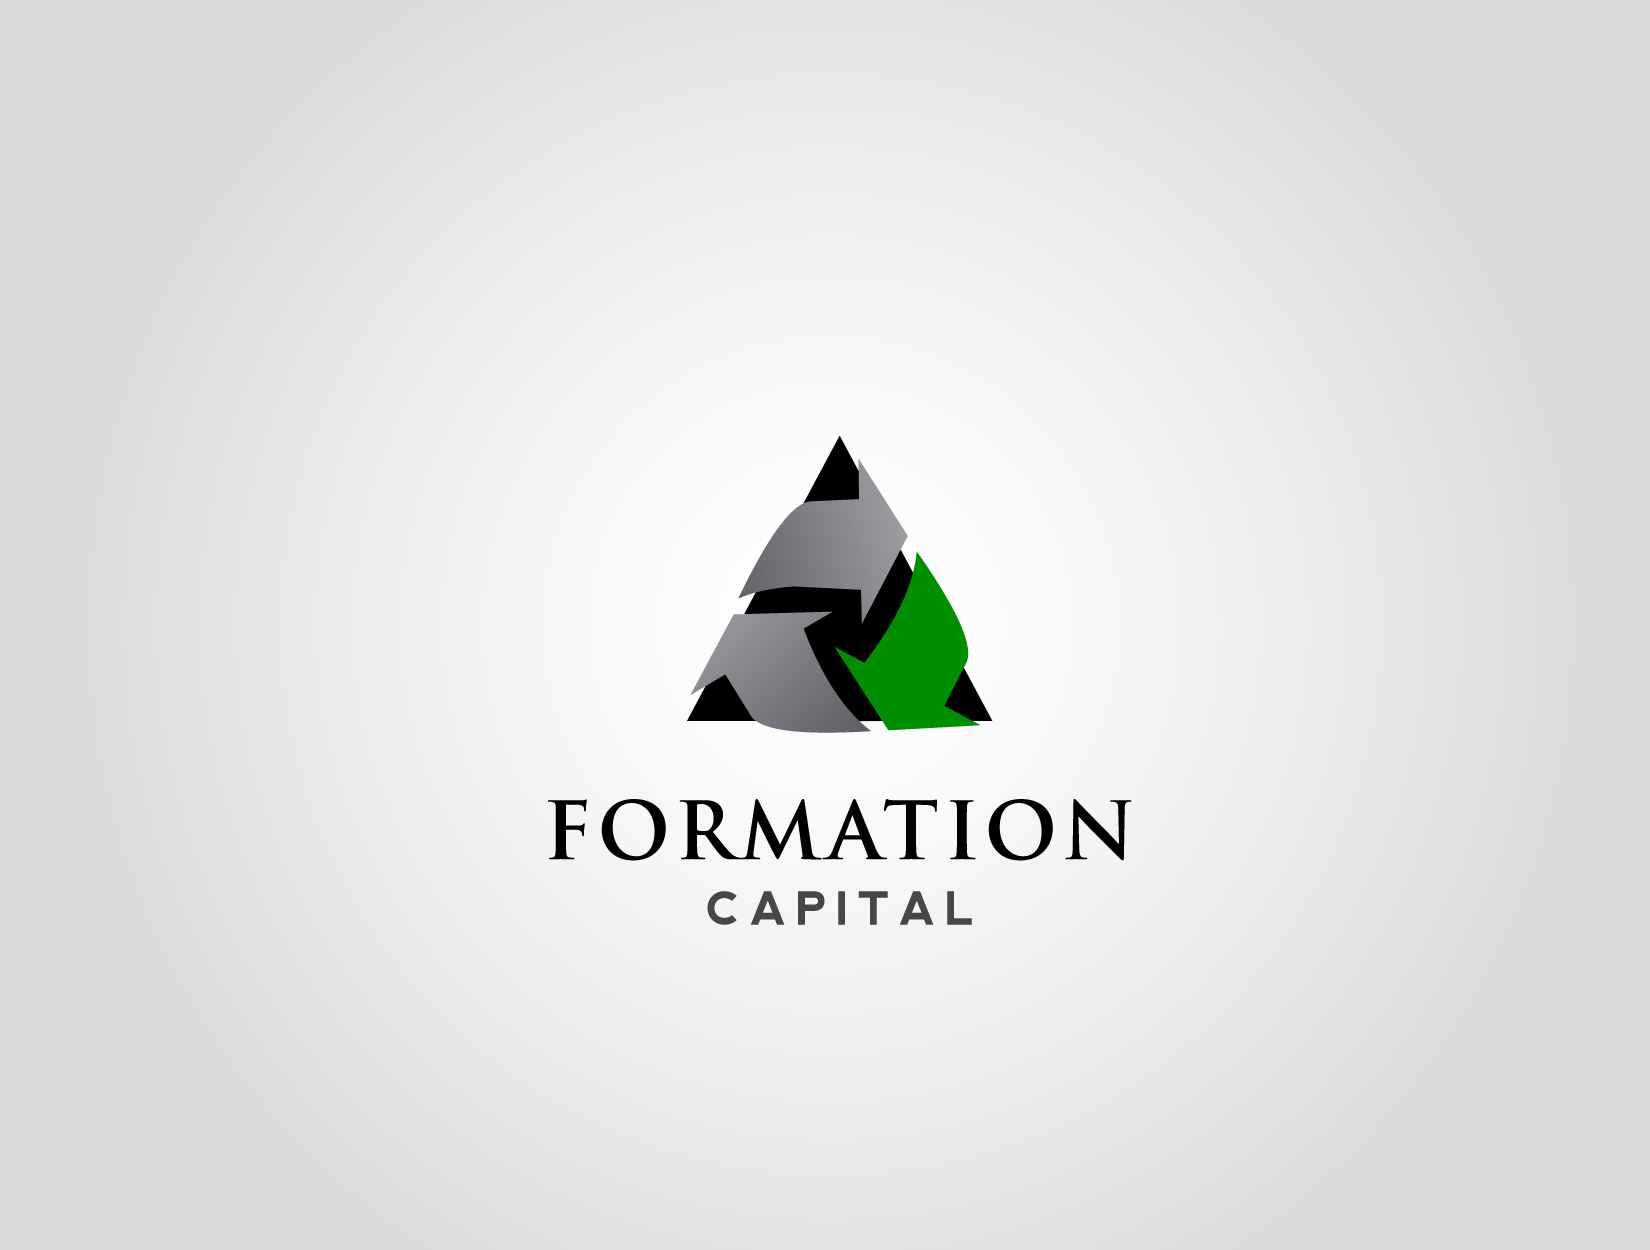 Logo Design by funkeekhan - Entry No. 222 in the Logo Design Contest Inspiring Logo Design for Formation Capital.